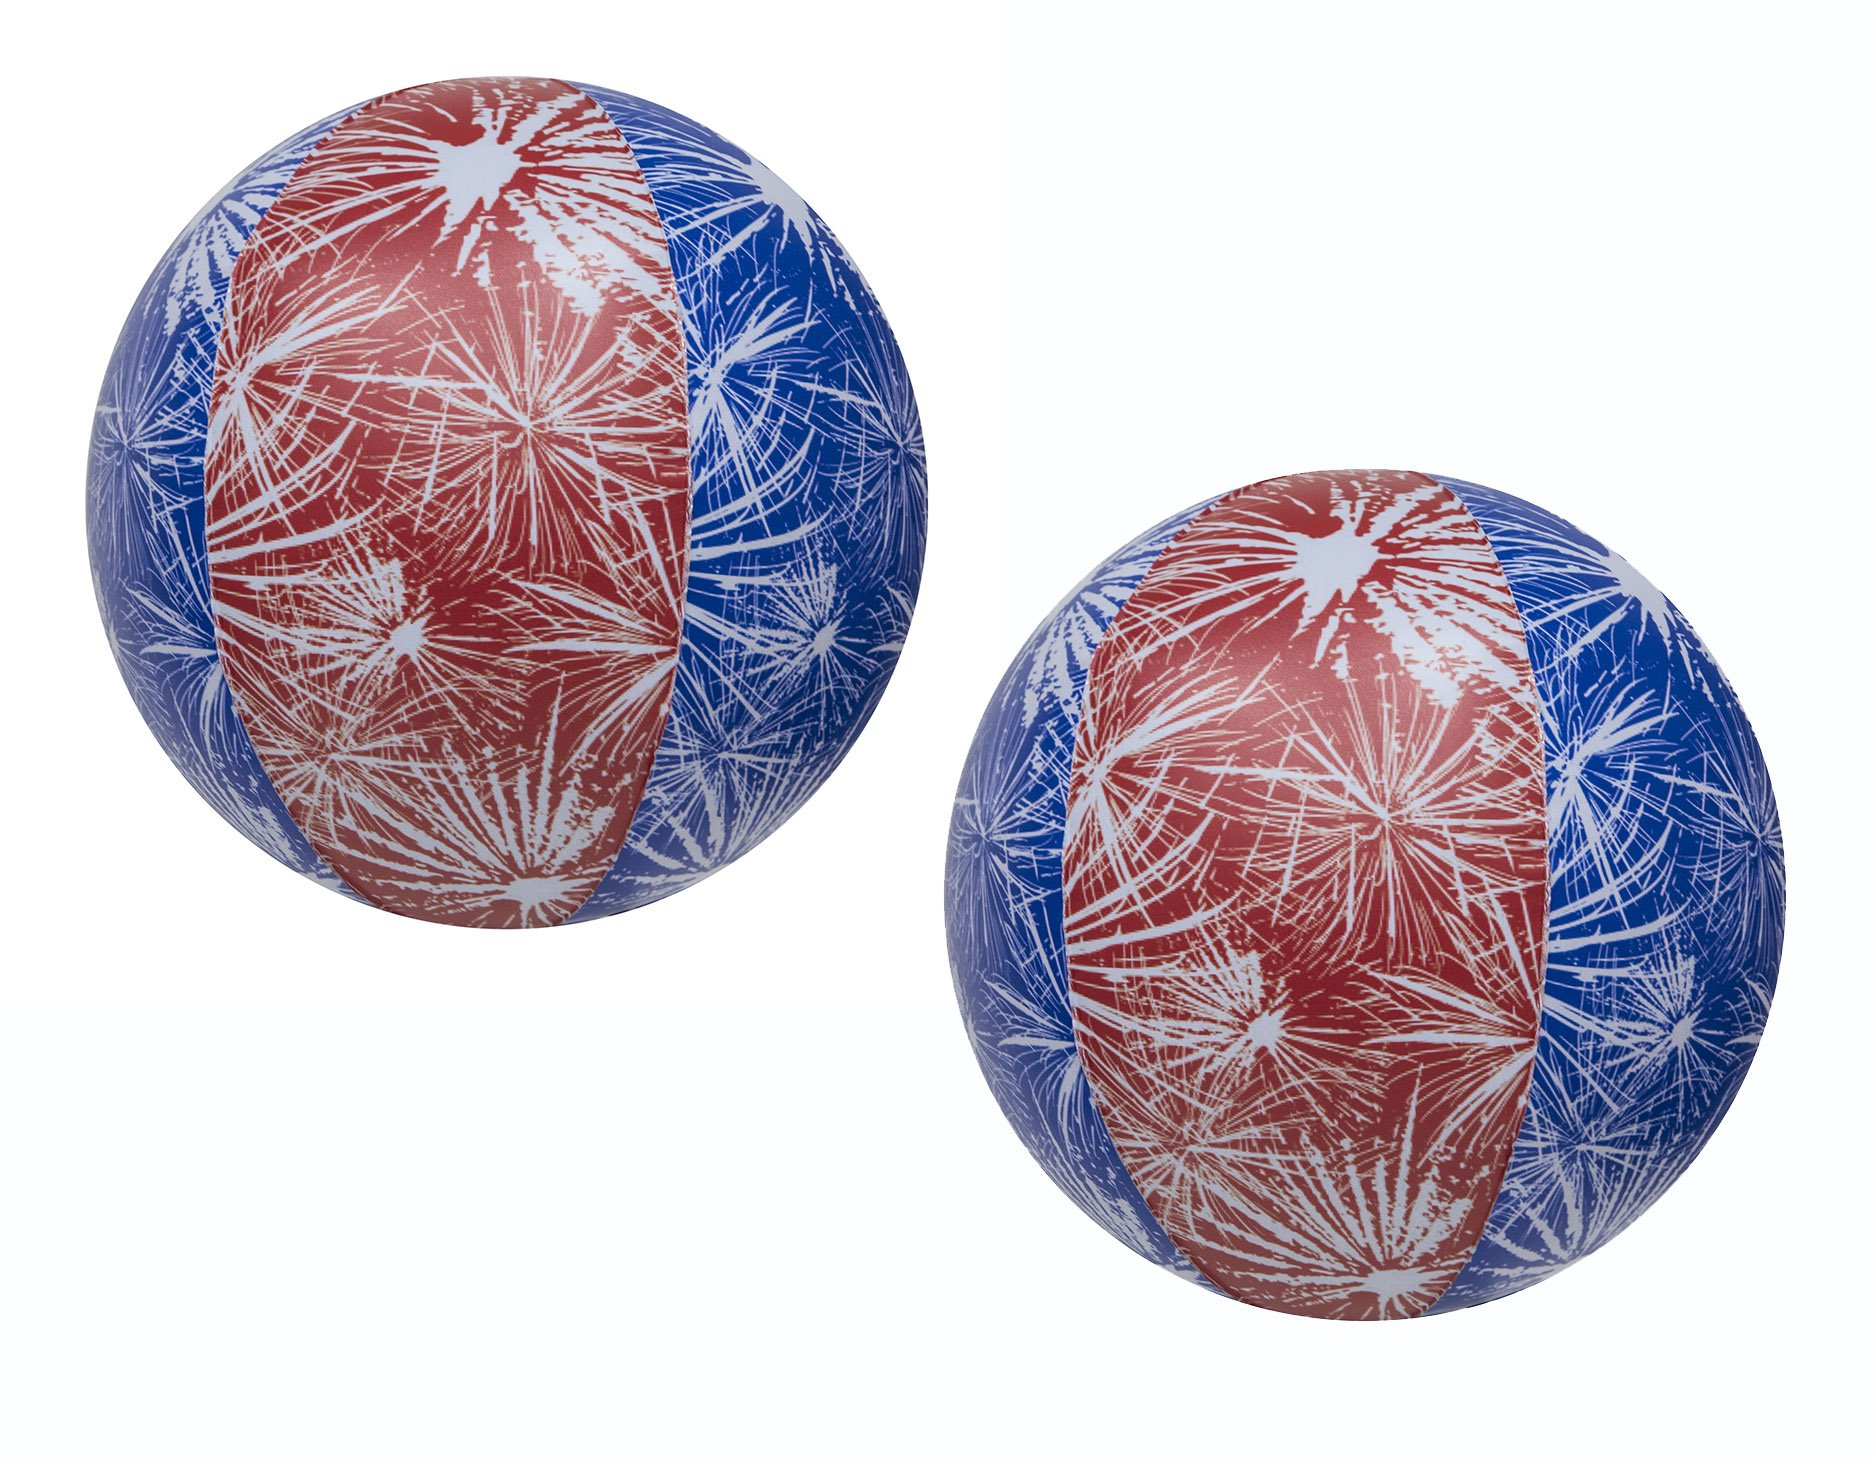 Impact Activated Light-Up Beach Ball with Fireworks Design - 14in diameter 2 Pk